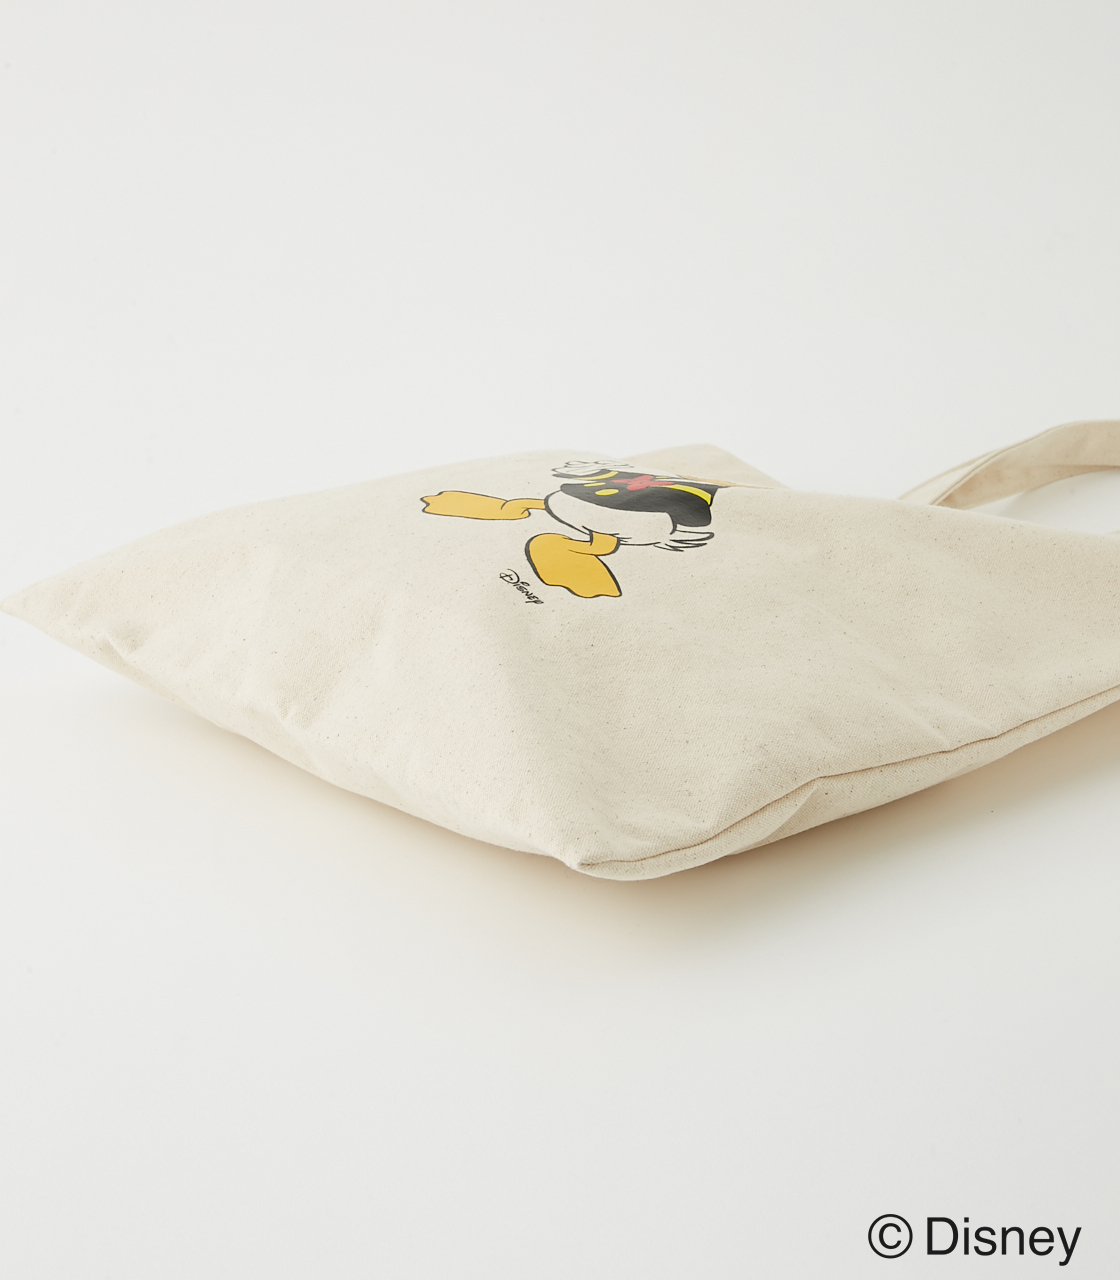 DONALD DUCK TOTE BAG/ドナルドダックトートバッグ 詳細画像 O/WHT 2